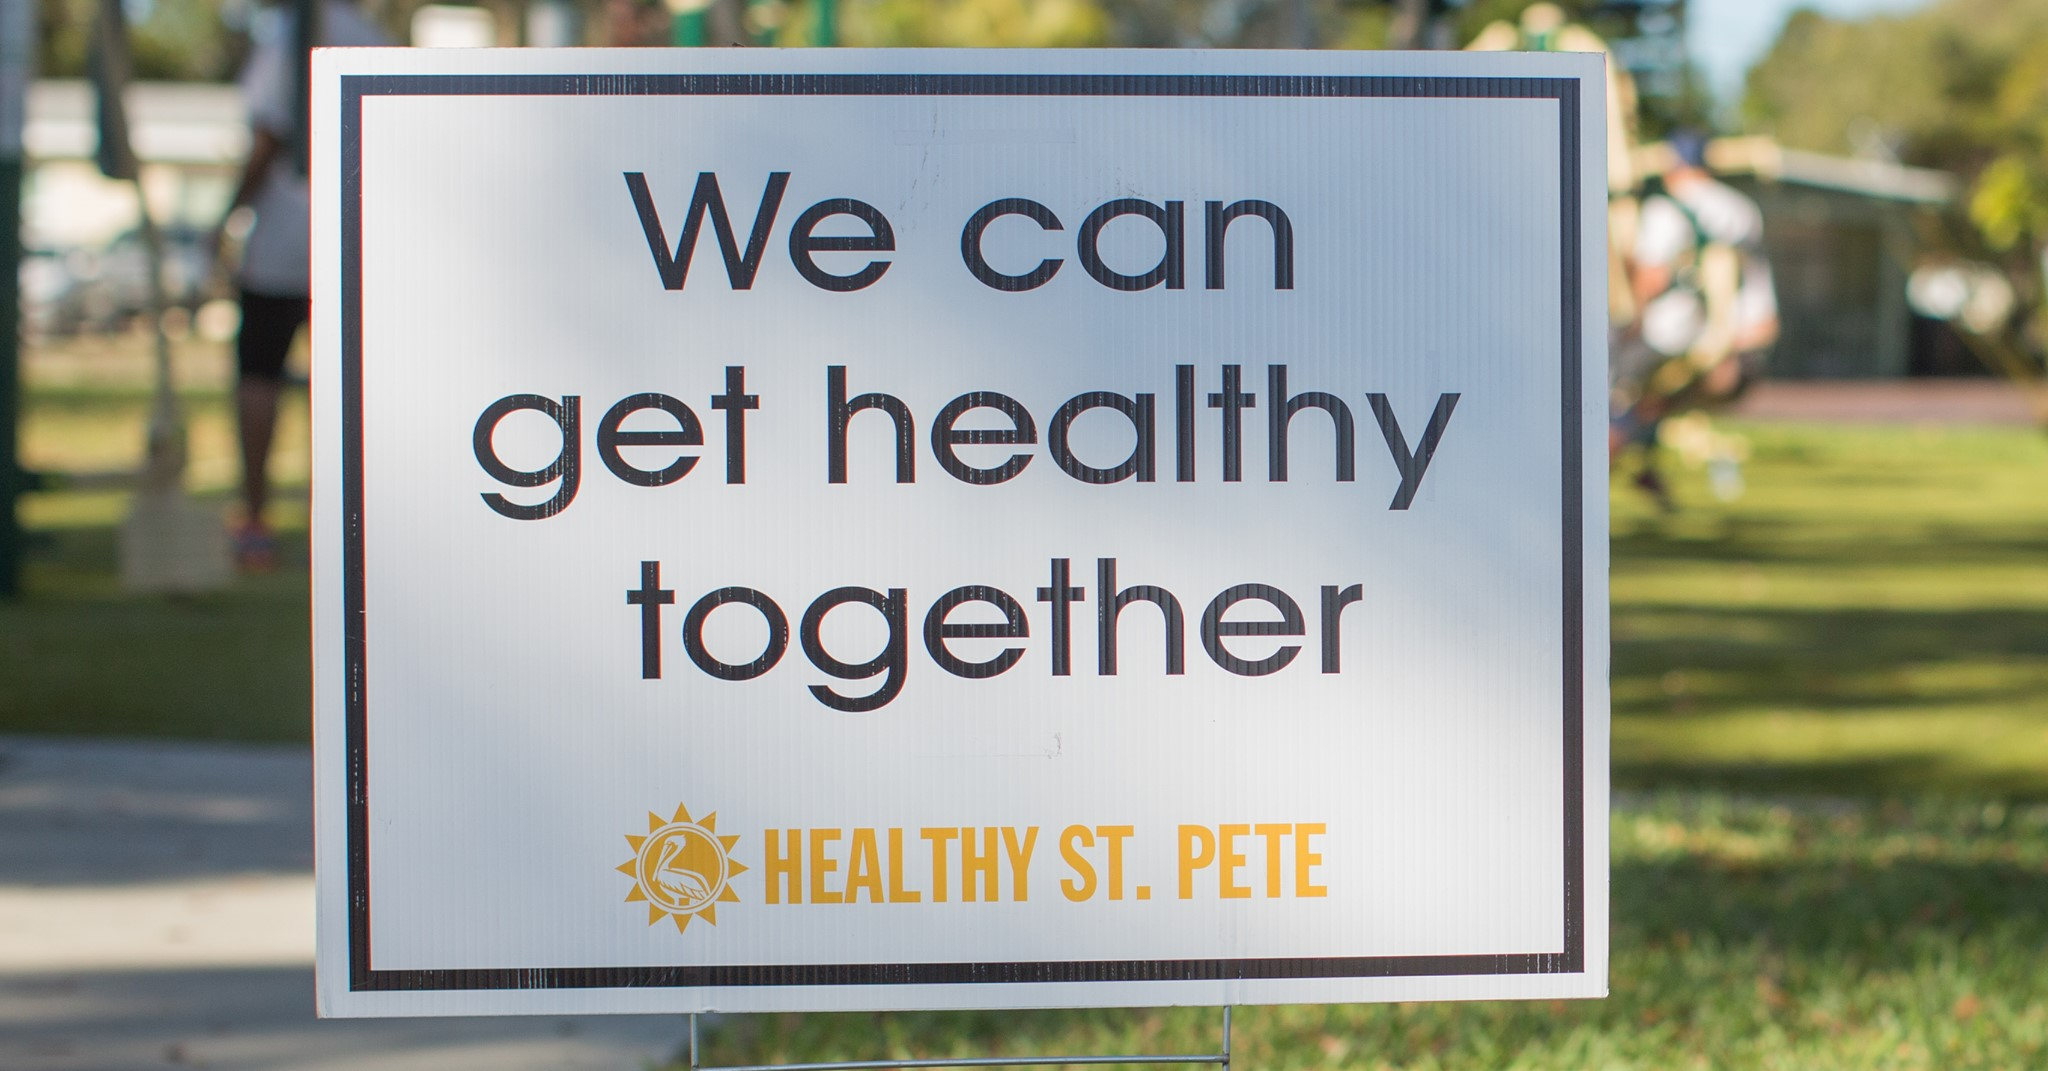 healthier together